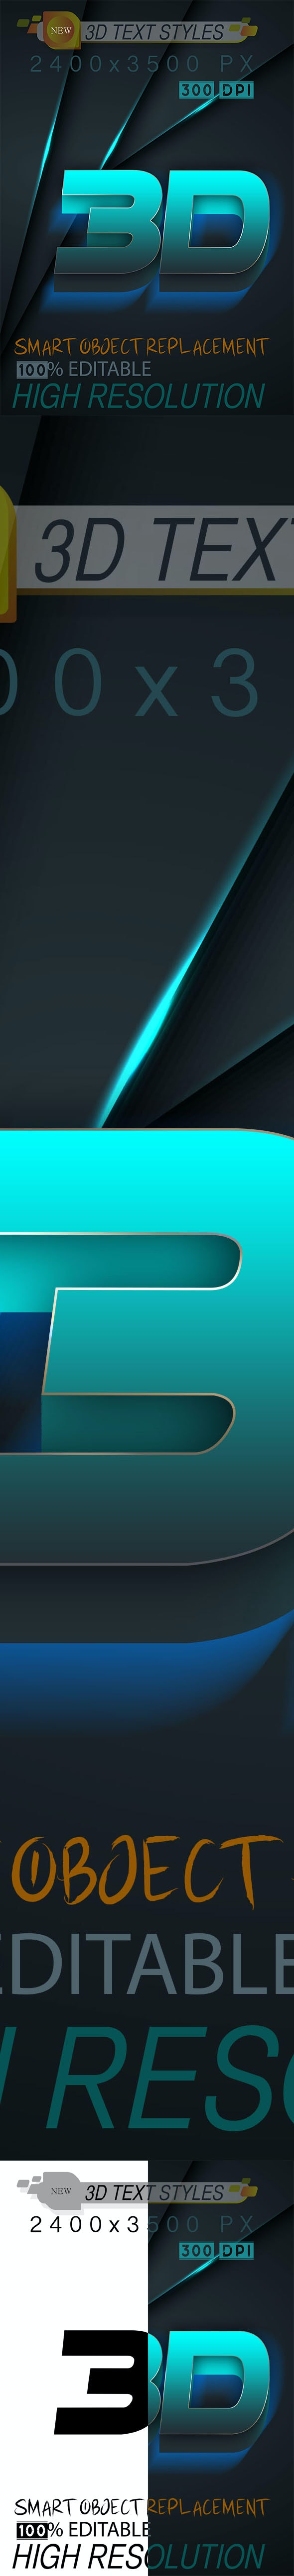 3D Text Styles 05_09_20 - Text Effects Actions